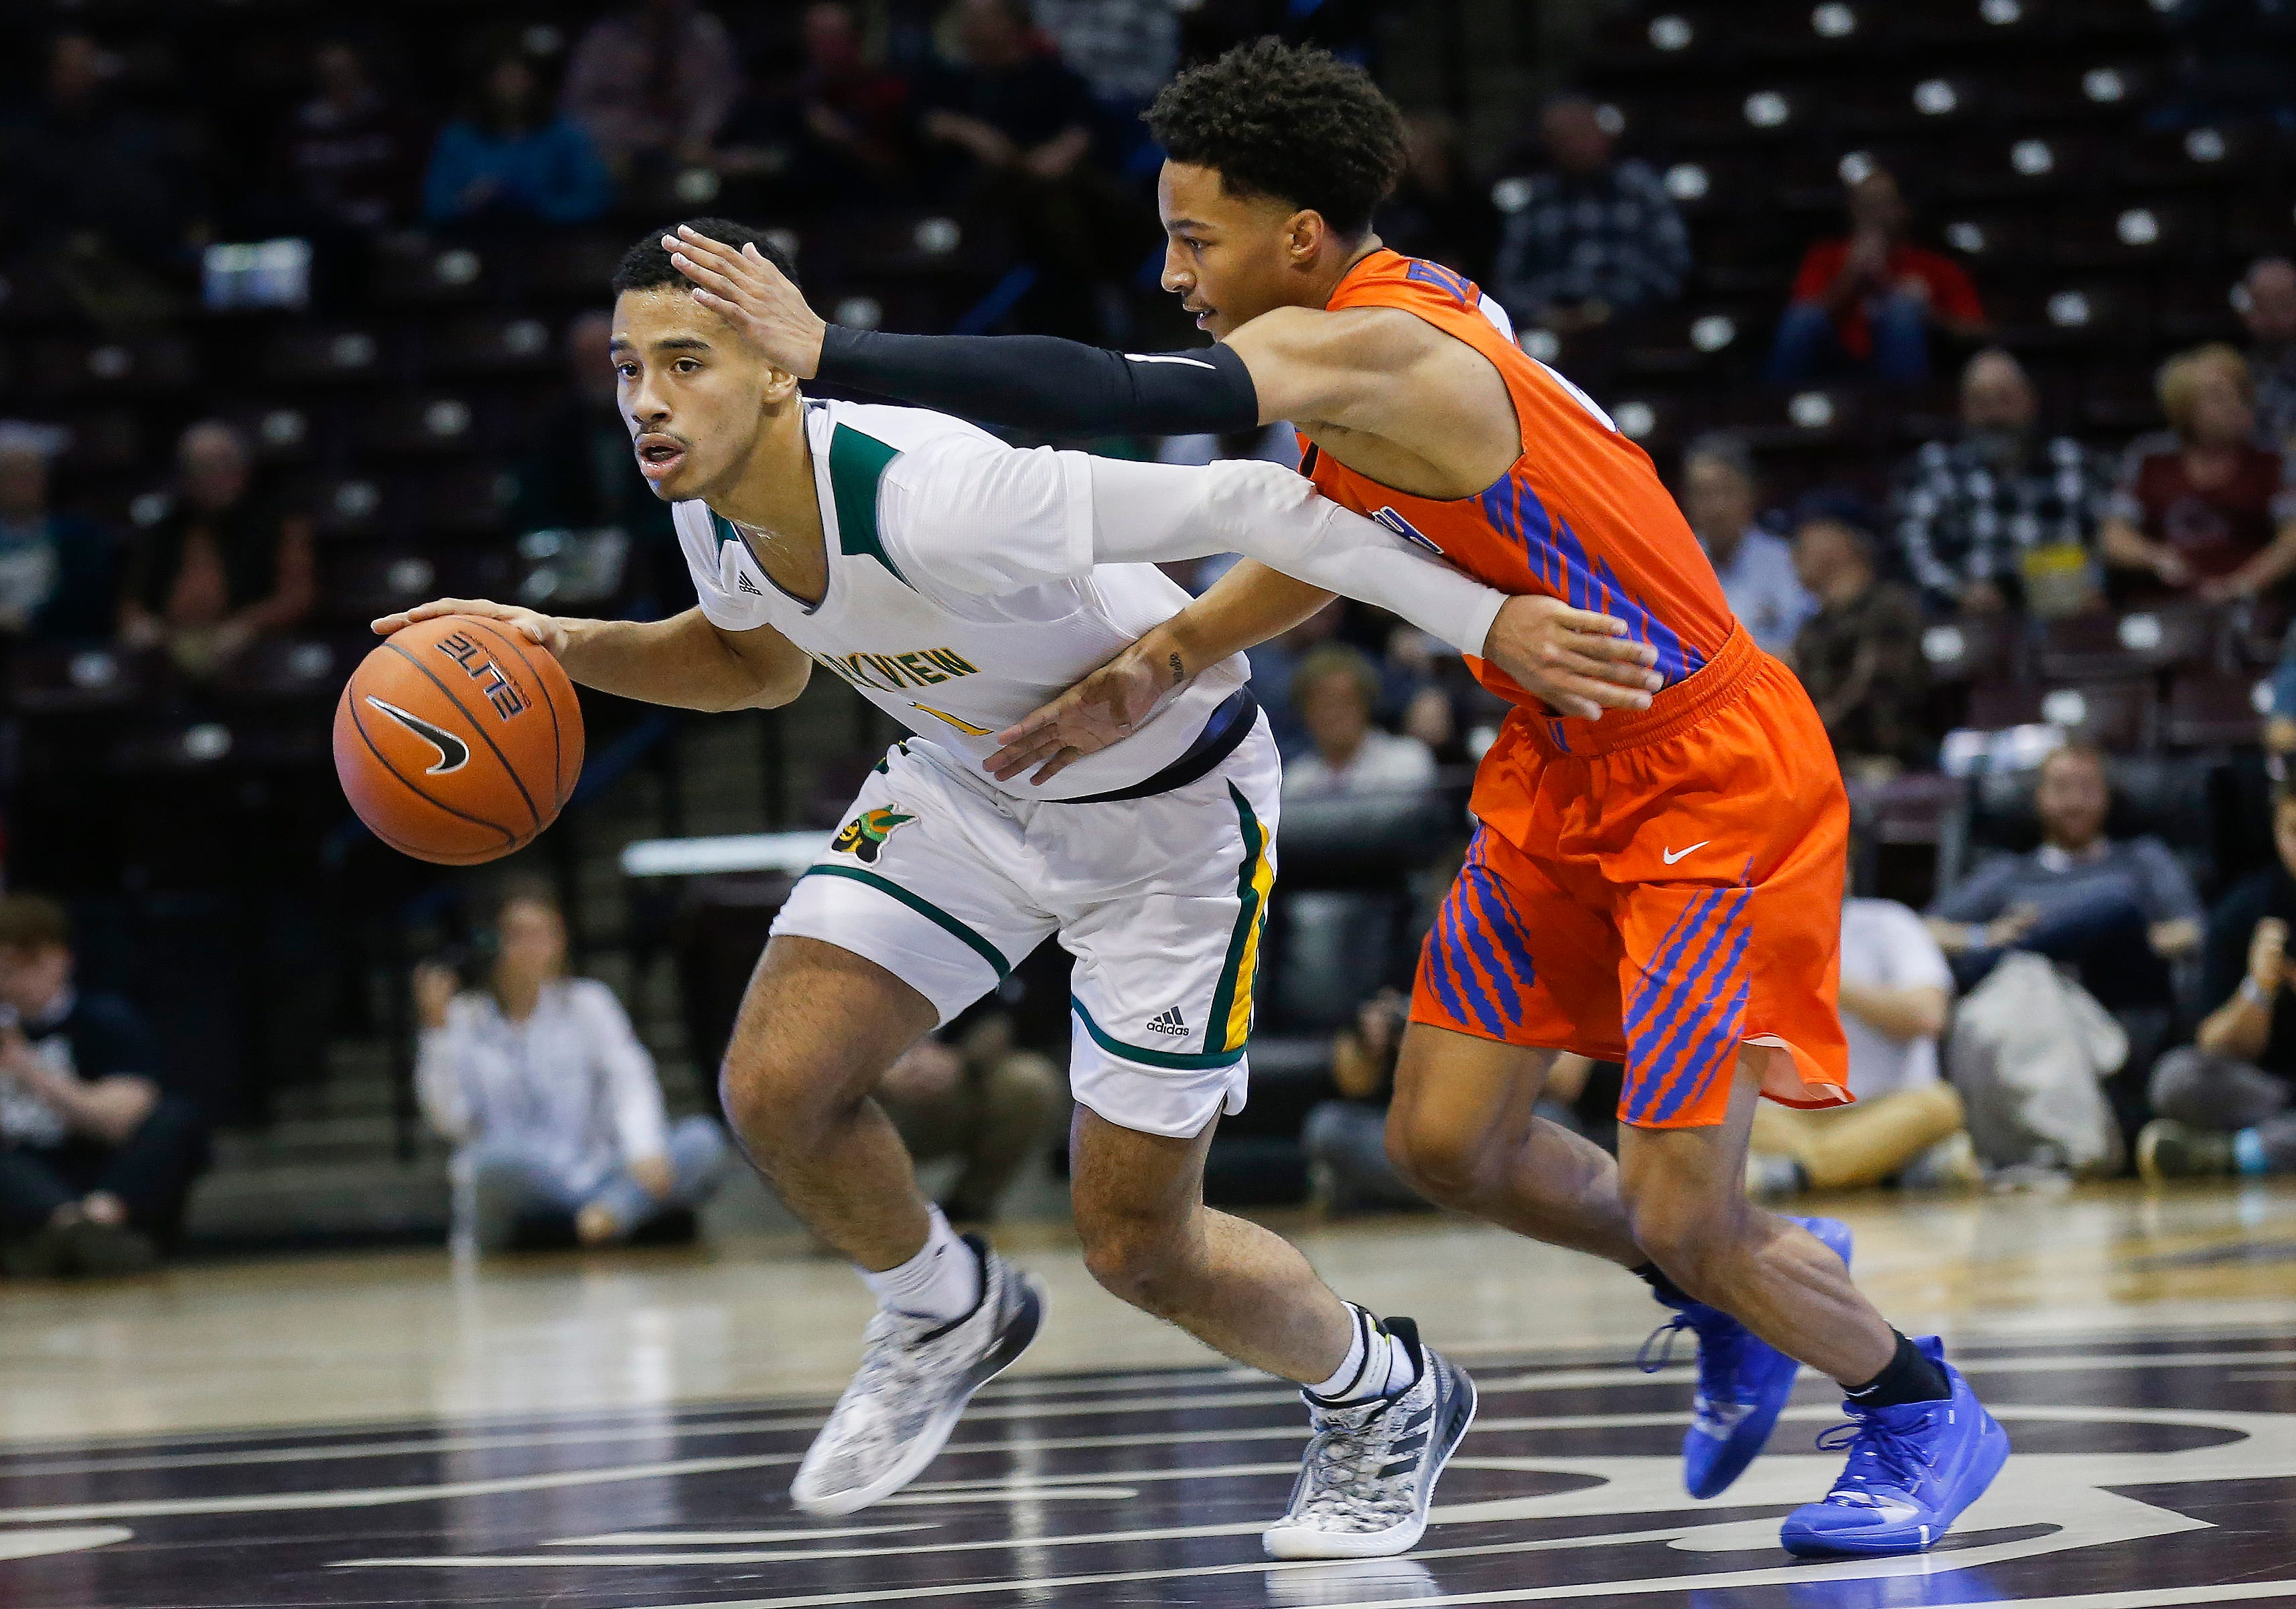 Dontae Taylor, of Parkview, brings the ball down the court during the Vikings' 75-46 loss to Rainier Beach in the Bass Pro Shops Tournament of Champions at JQH Arena on Friday, Jan. 18, 2019.